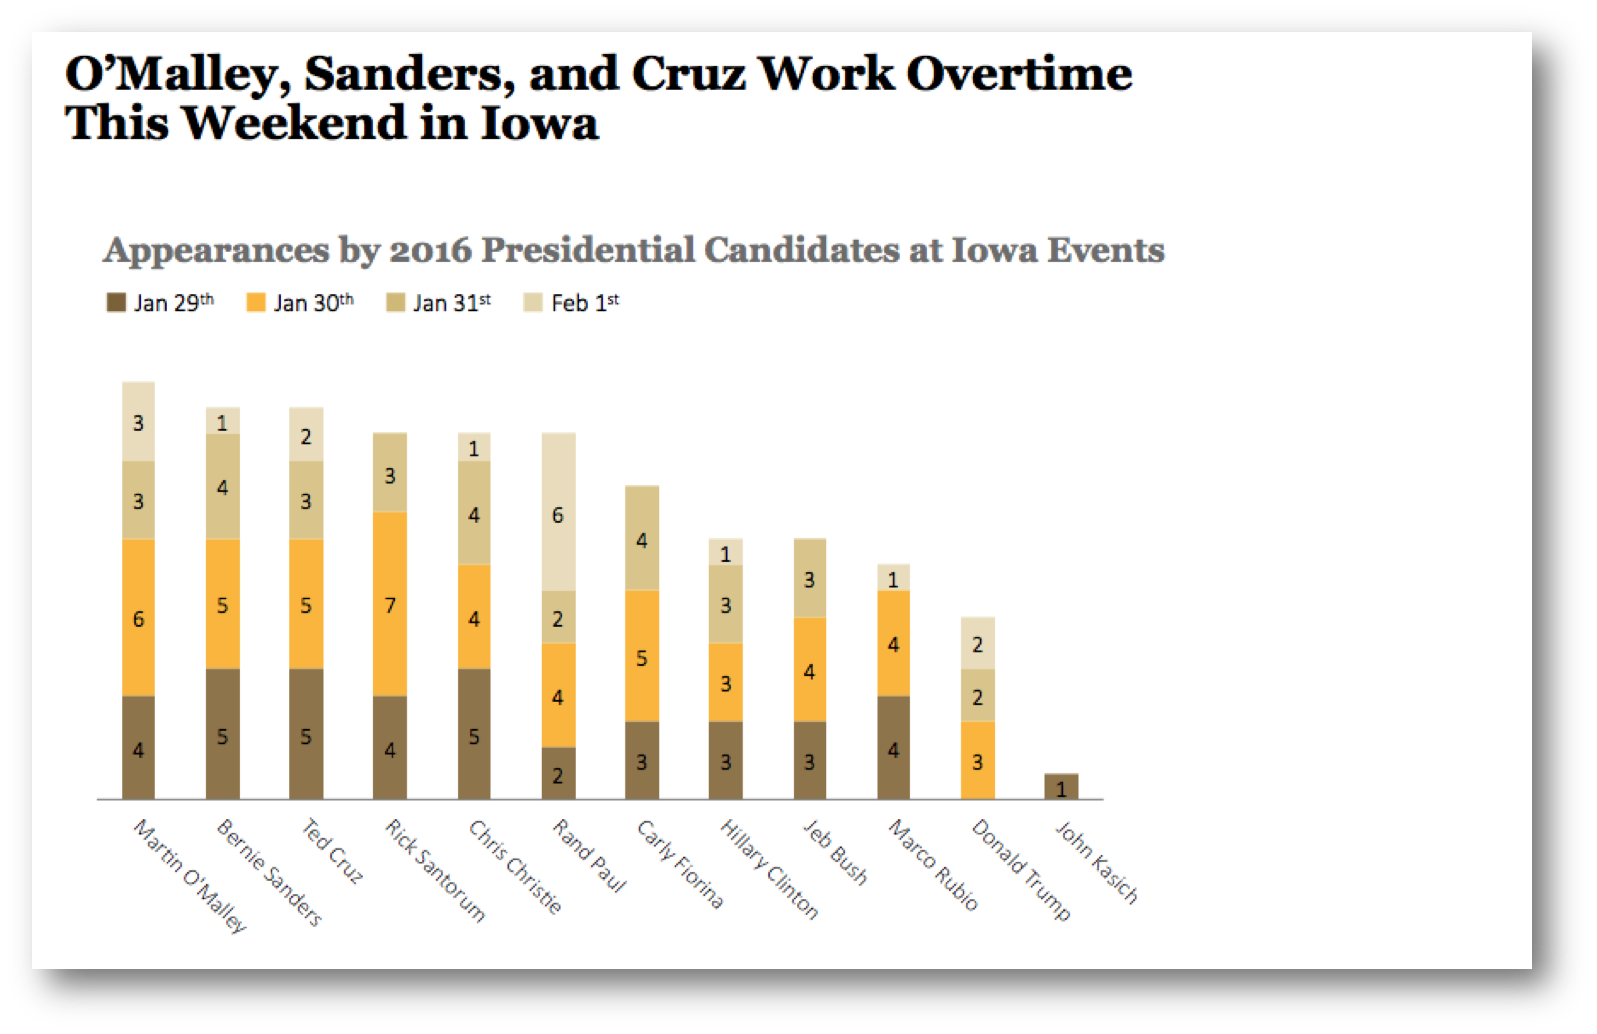 Appearances by Presidential Candidates in Iowa